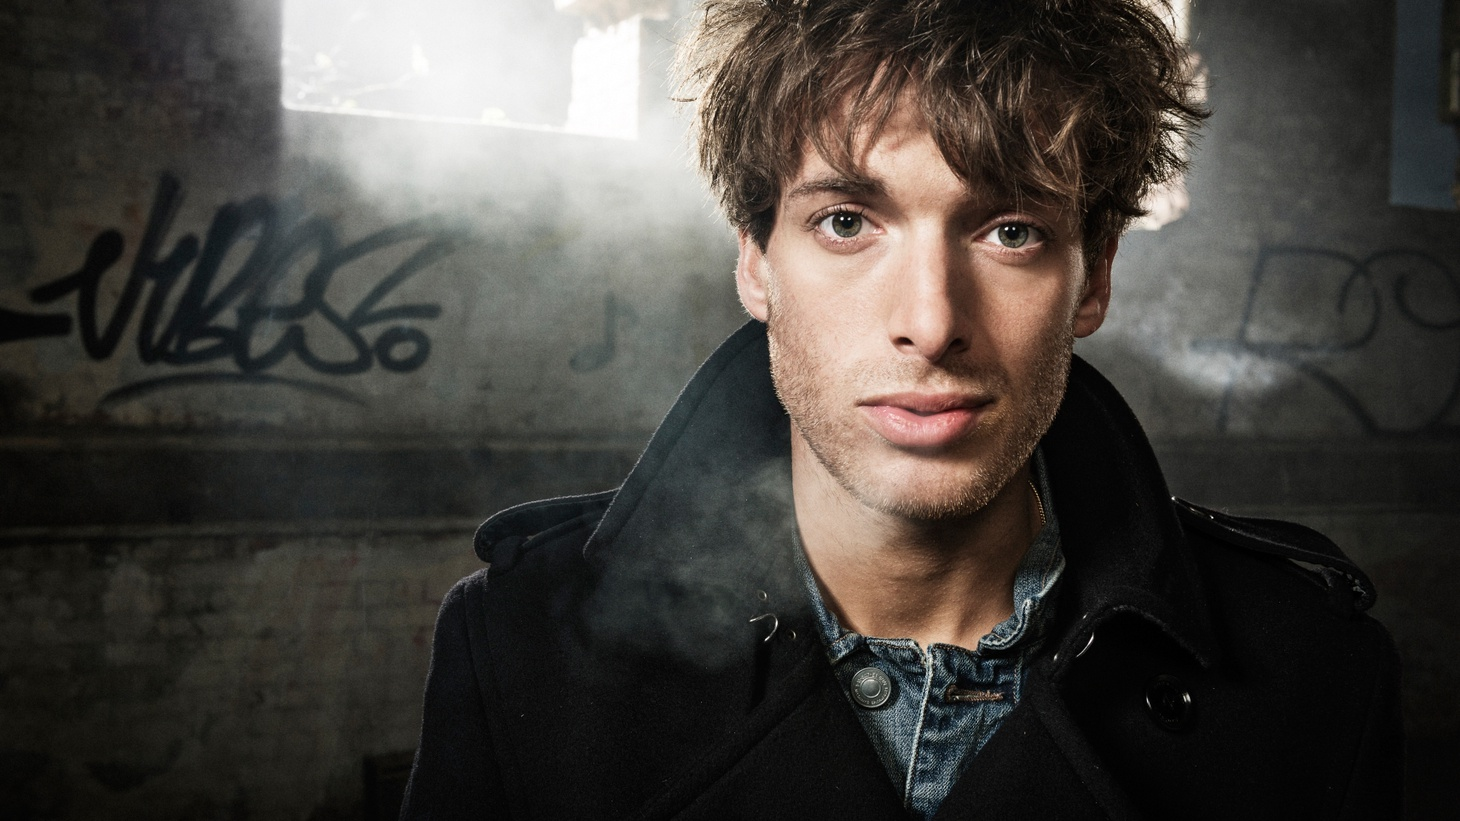 Scottish singer/songwriter Paolo Nutini is a household name across the pond. His excellent third album is a diverse collection of songs, including some bittersweet ballads. We'll hear it live on Morning Becomes Eclectic.